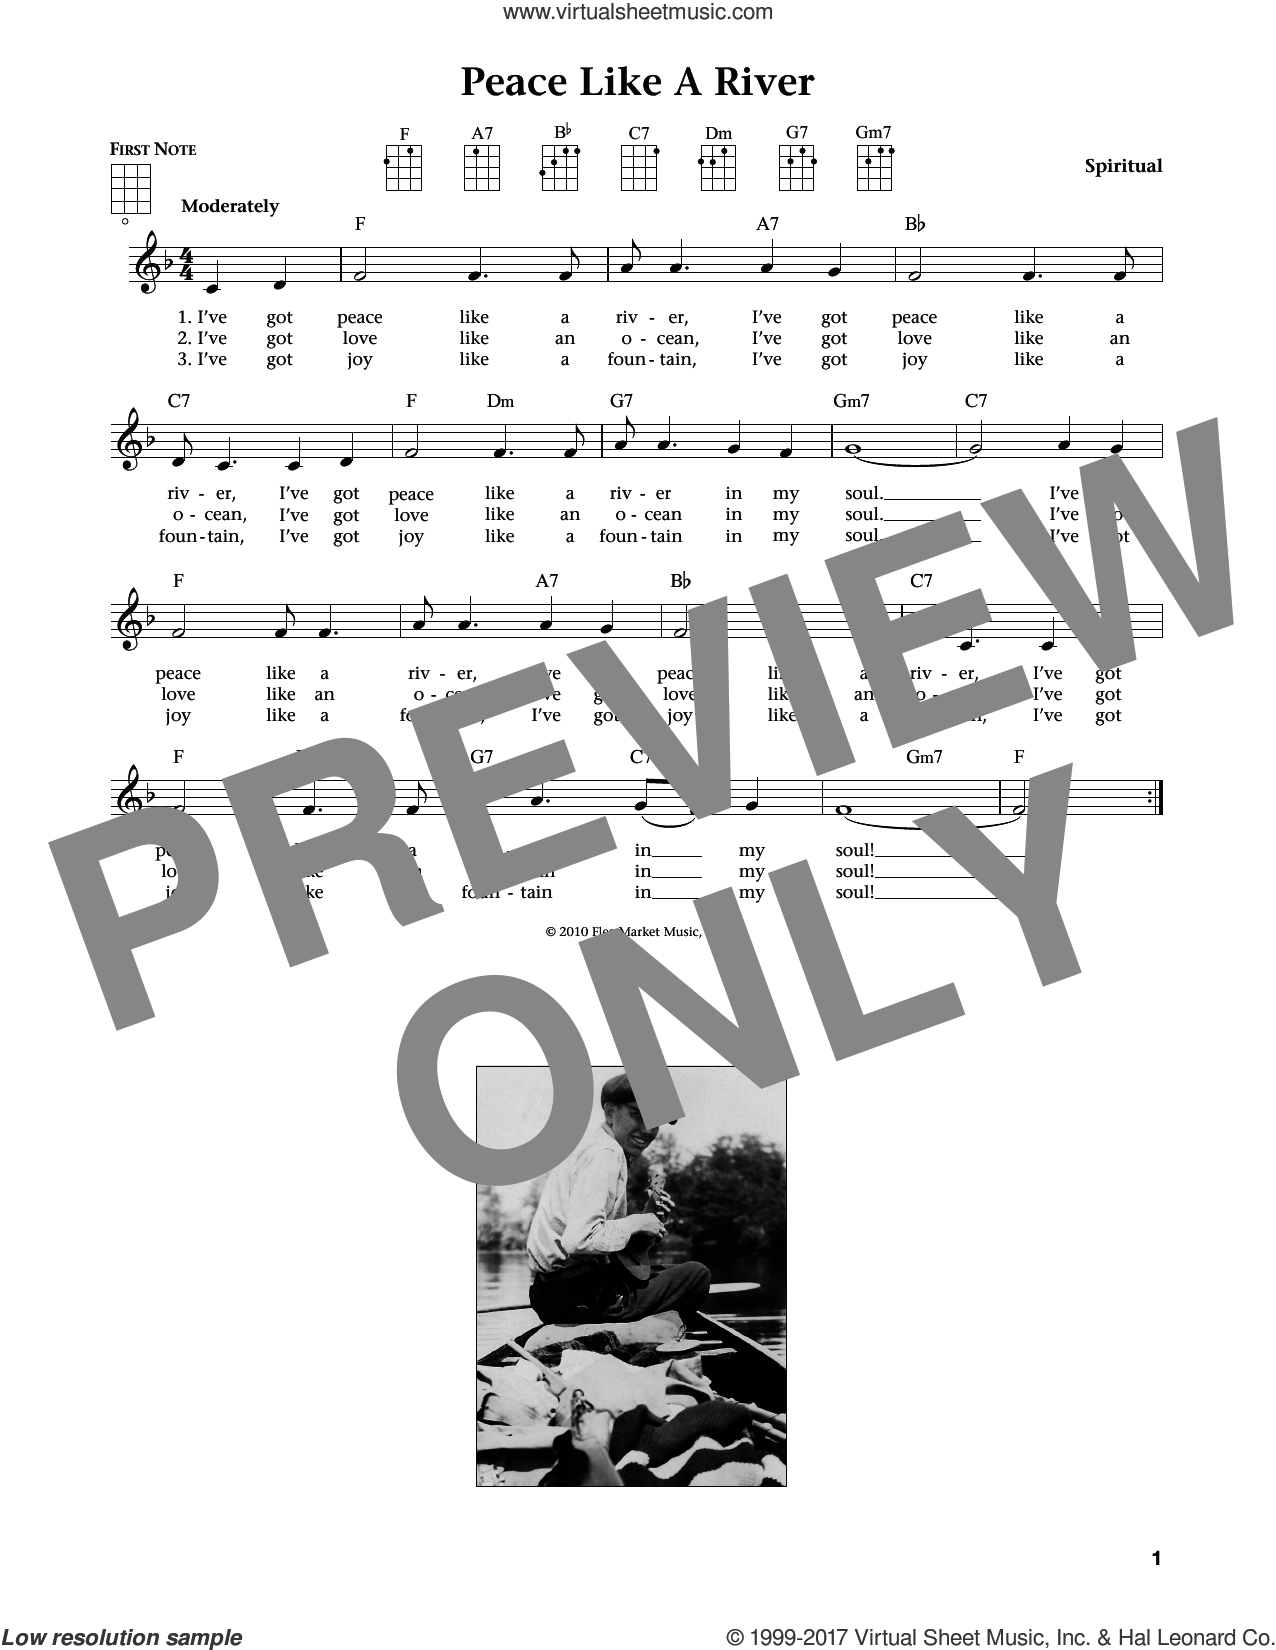 I've Got Peace Like A River (from The Daily Ukulele) (arr. Liz and Jim Beloff) sheet music for ukulele , Jim Beloff and Liz Beloff, intermediate skill level